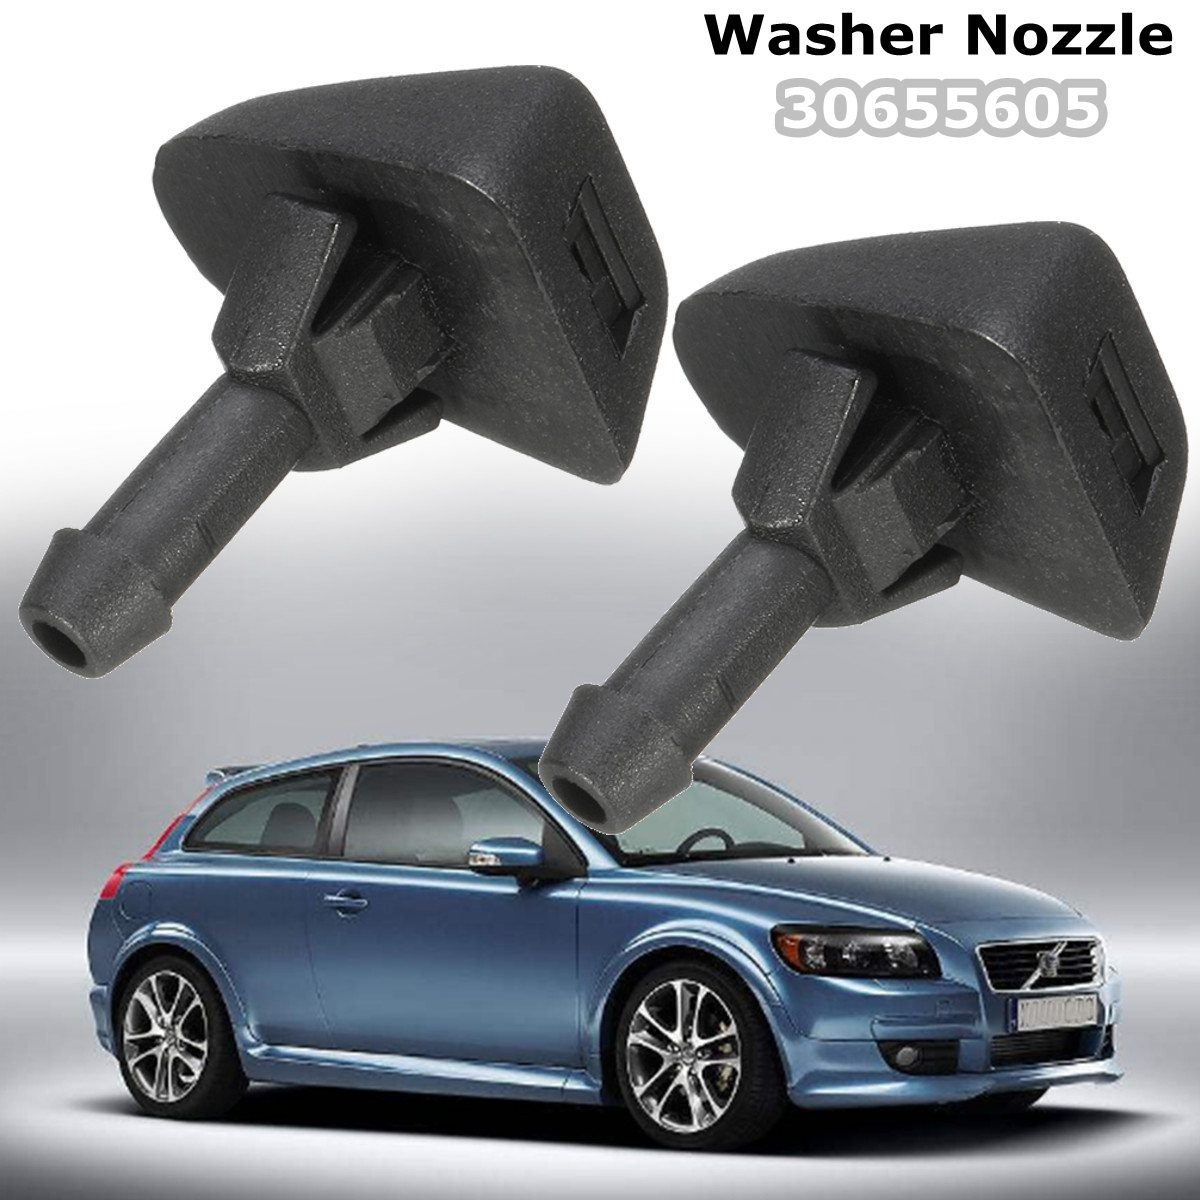 2x Windscreen Washer Nozzle Squirter Jet Windshield Washer Nozzles Jet 30655605 For <font><b>Volvo</b></font> <font><b>XC90</b></font> C30 C70 S image